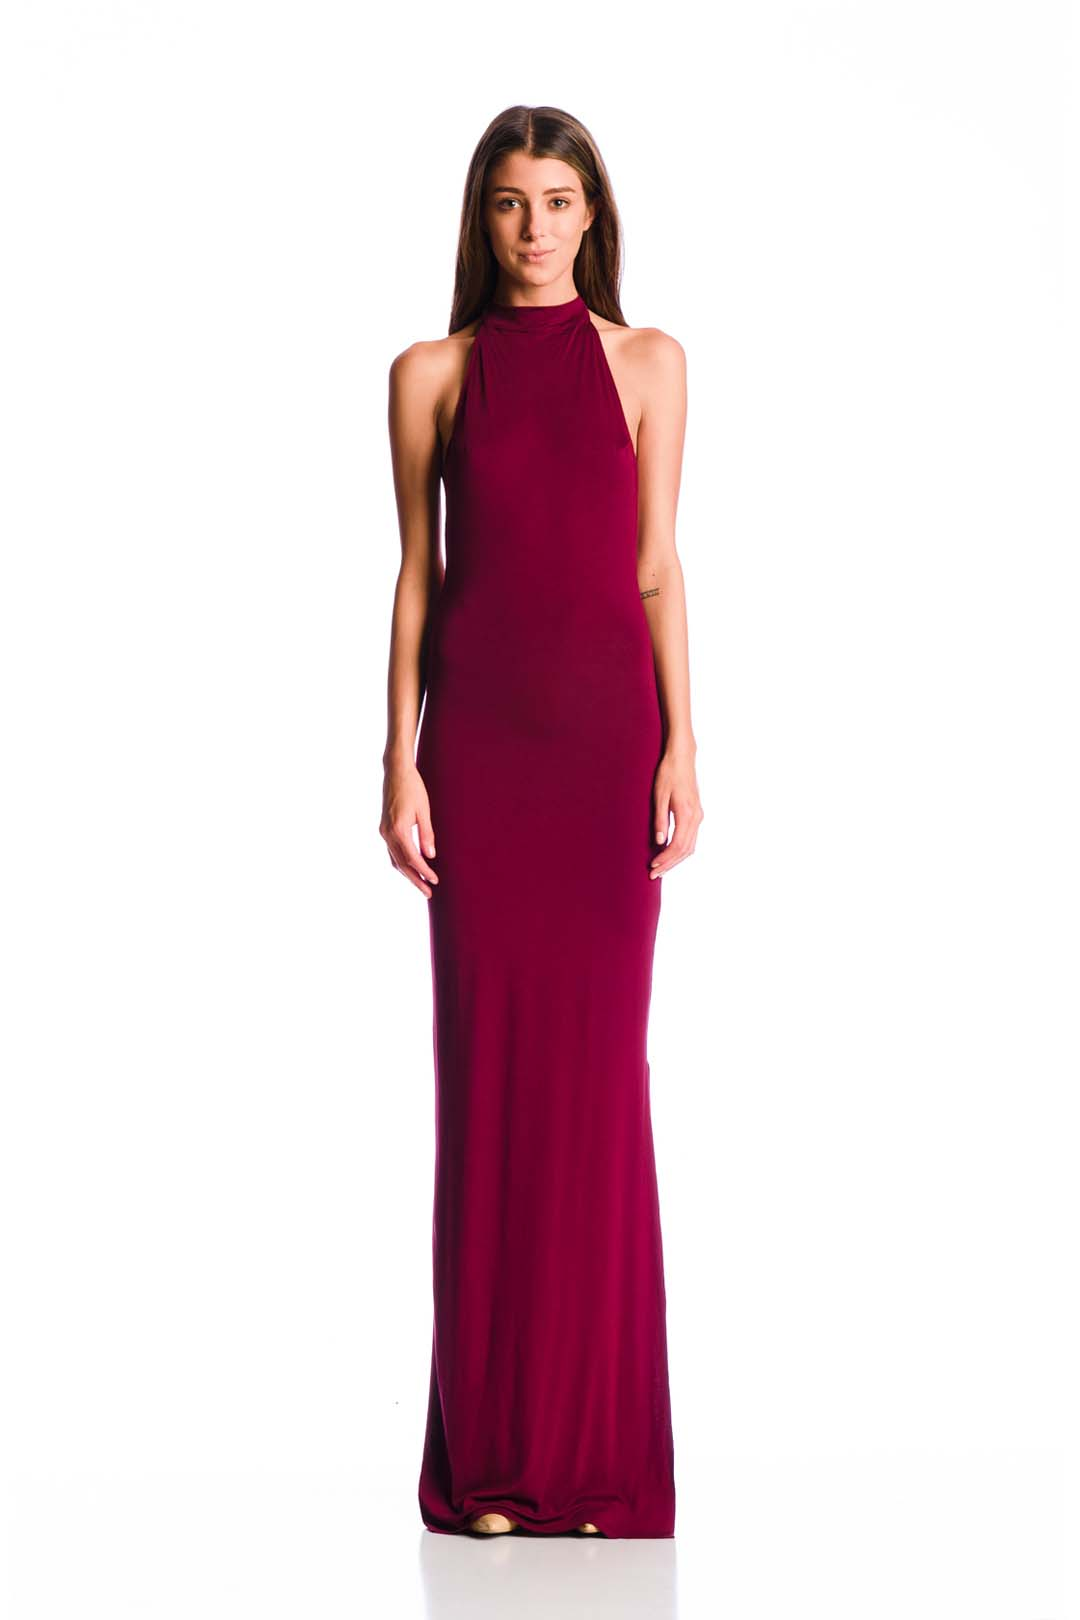 f8485edabef the backless maxi dress